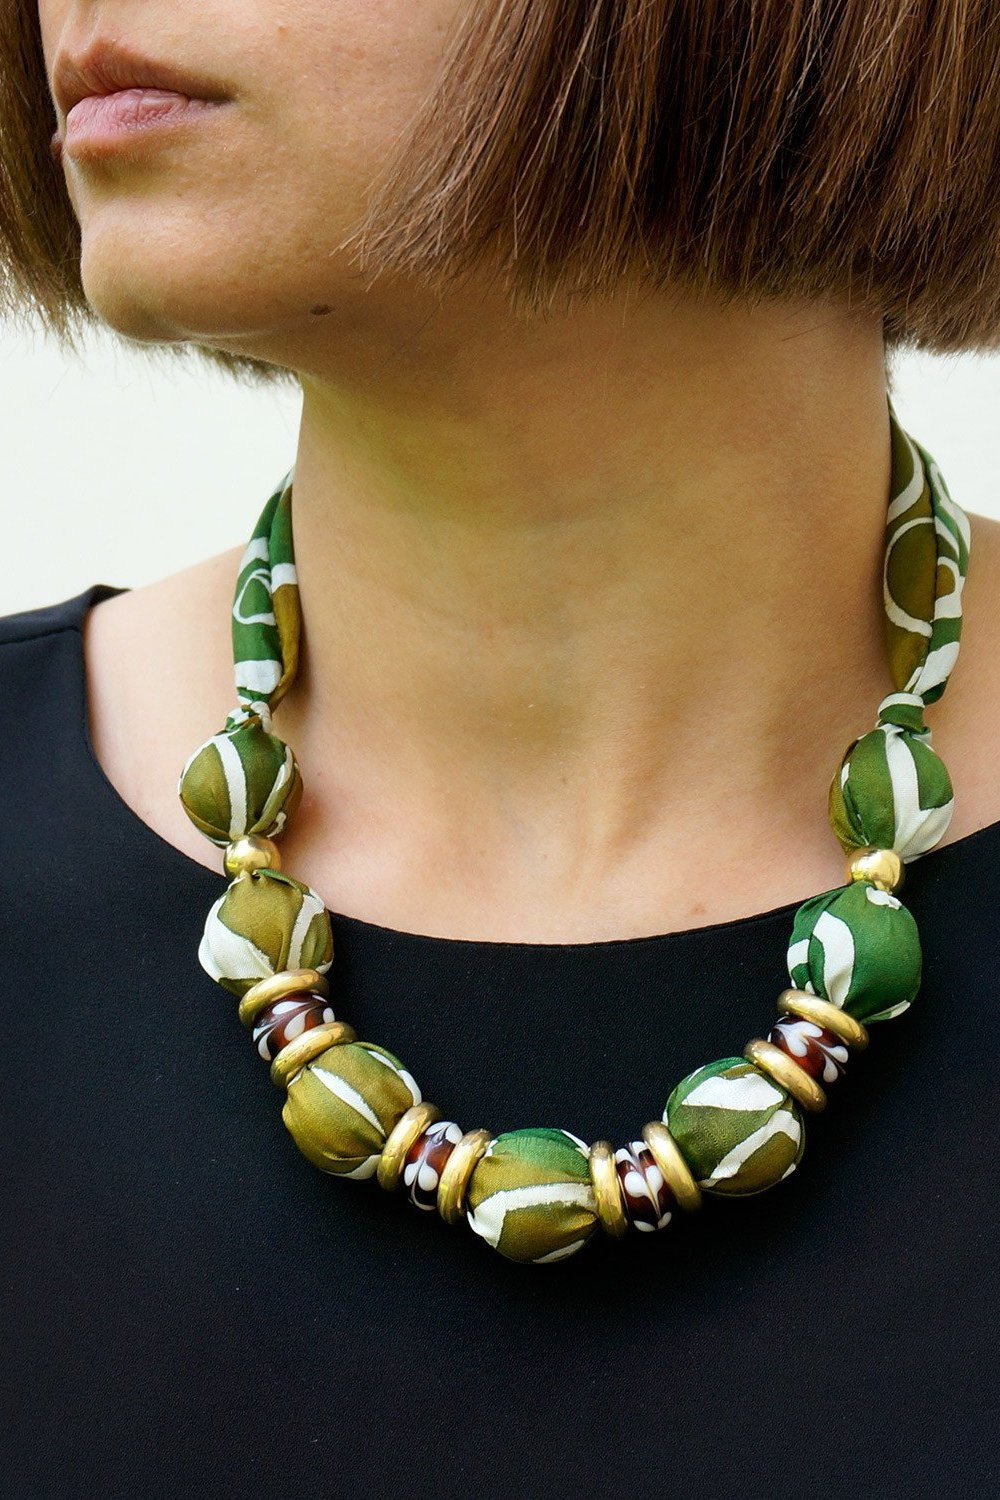 Camouflage necklace - Arati Devasher: Painted Silk Accessories - Necklace - 2